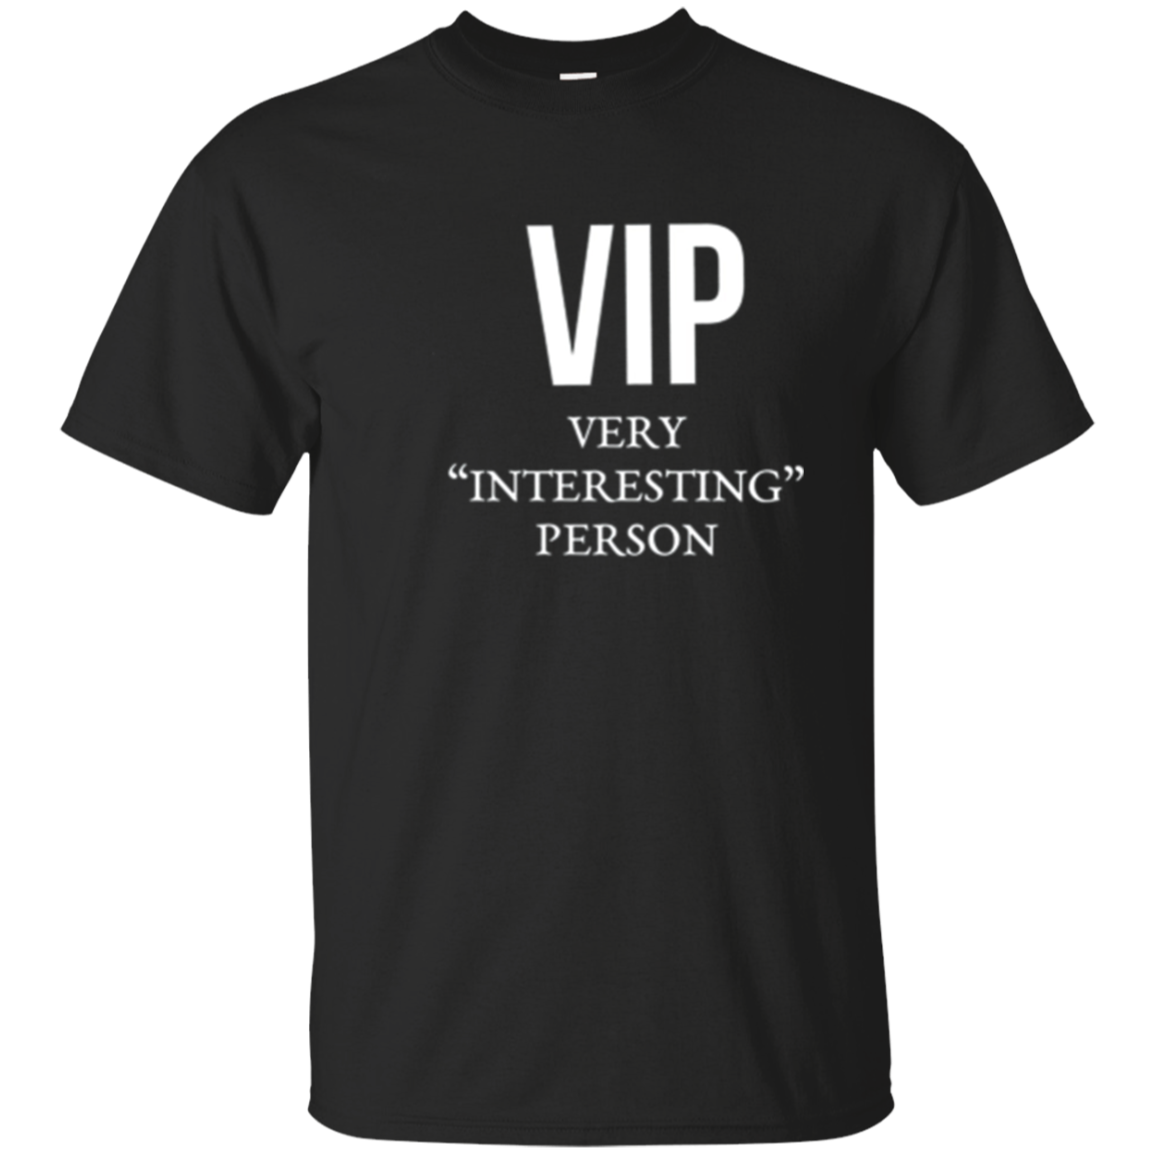 Womens VIP Very Interesting Person funny ironic T Shirt